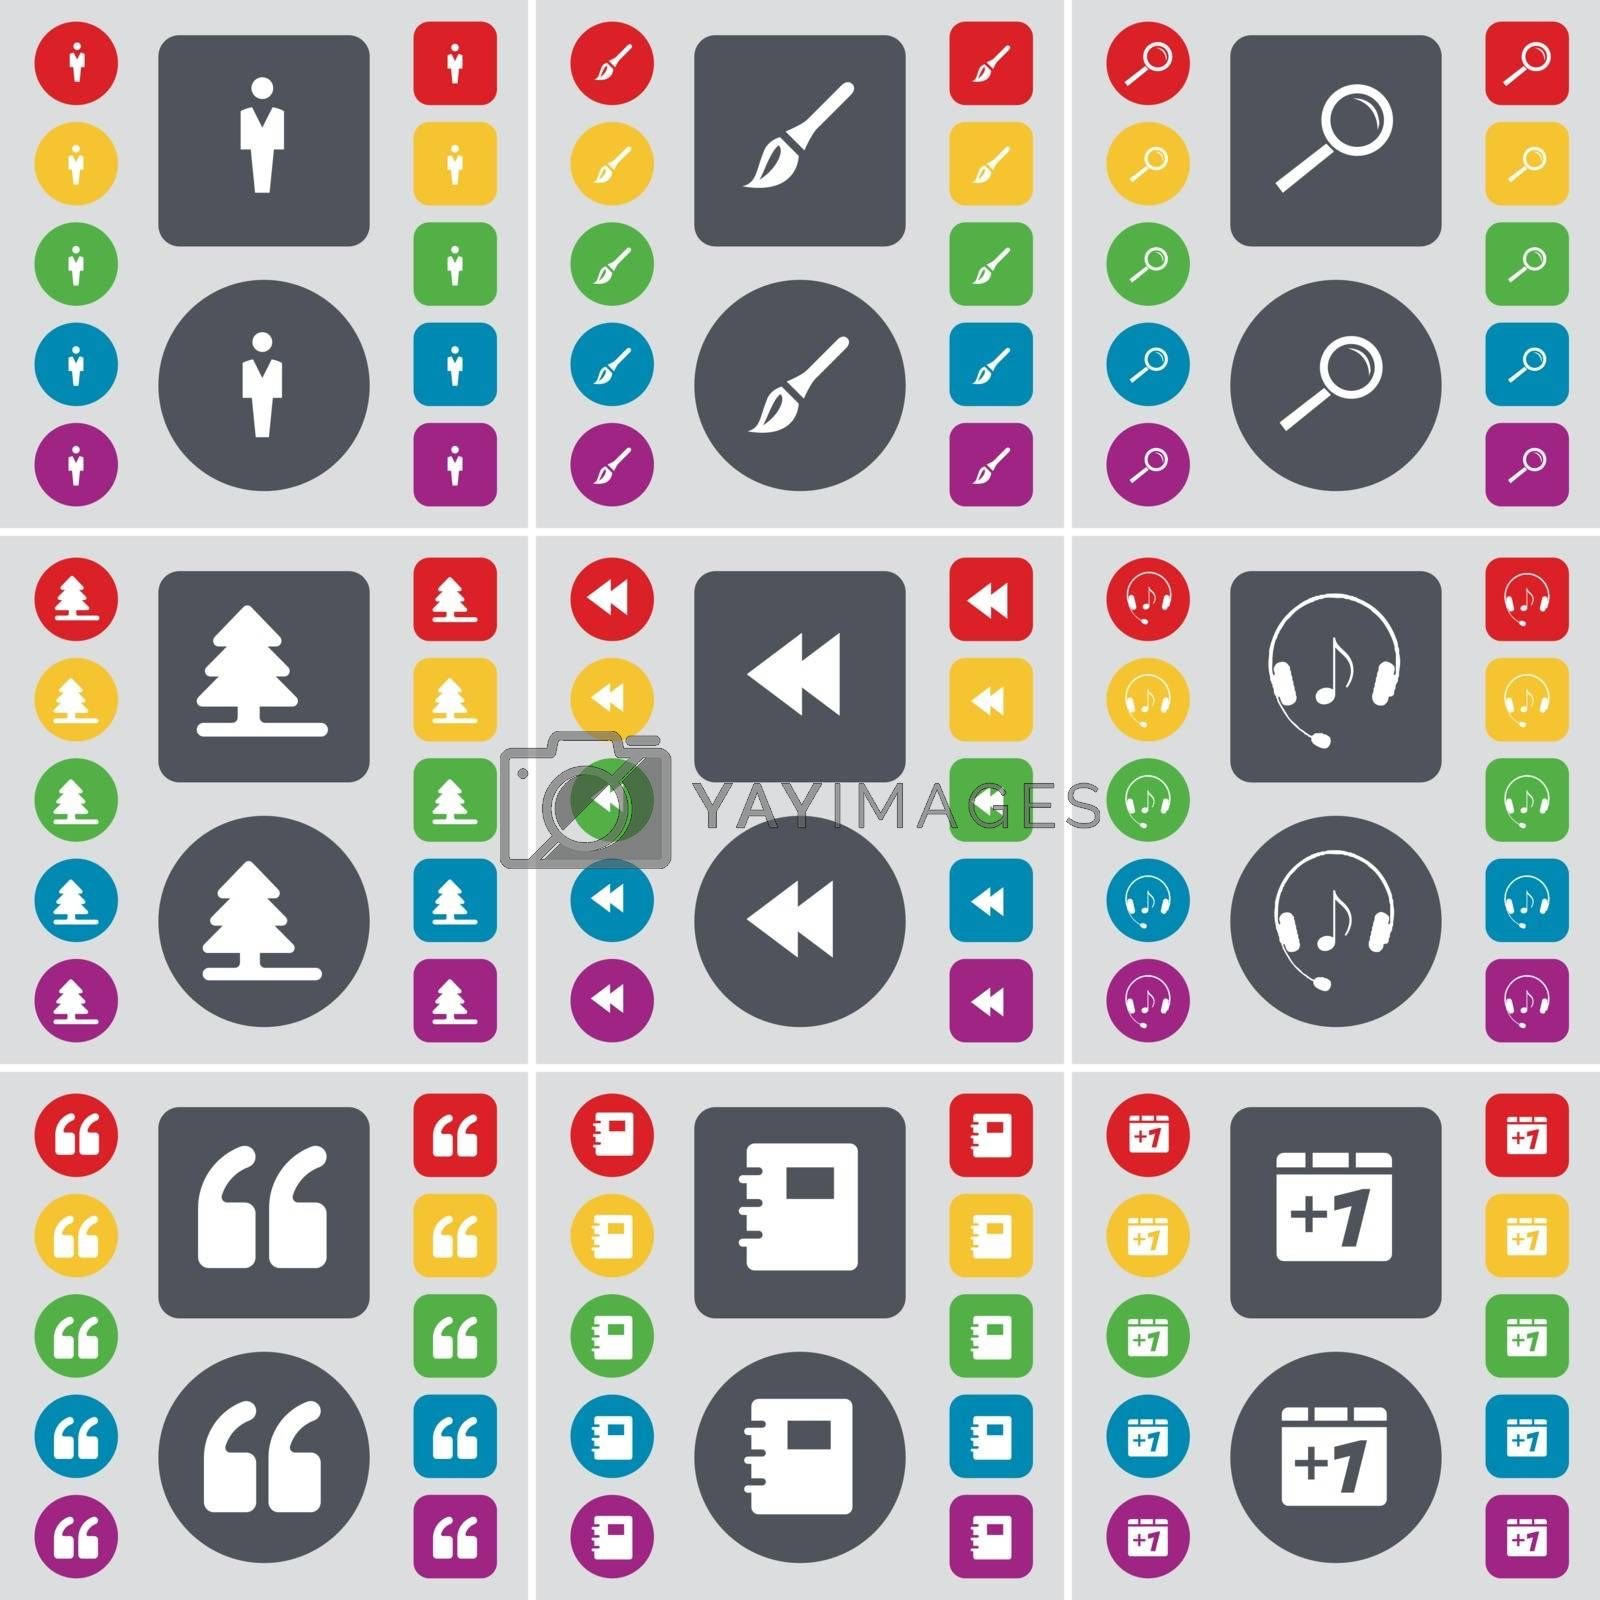 Royalty free image of Silhouette, Brush, Magnifying glass, Firtree, Rewind, Headphones, Quotation mark, Notebook, Plus one icon symbol. A large set of flat, colored buttons for your design. Vector by serhii_lohvyniuk